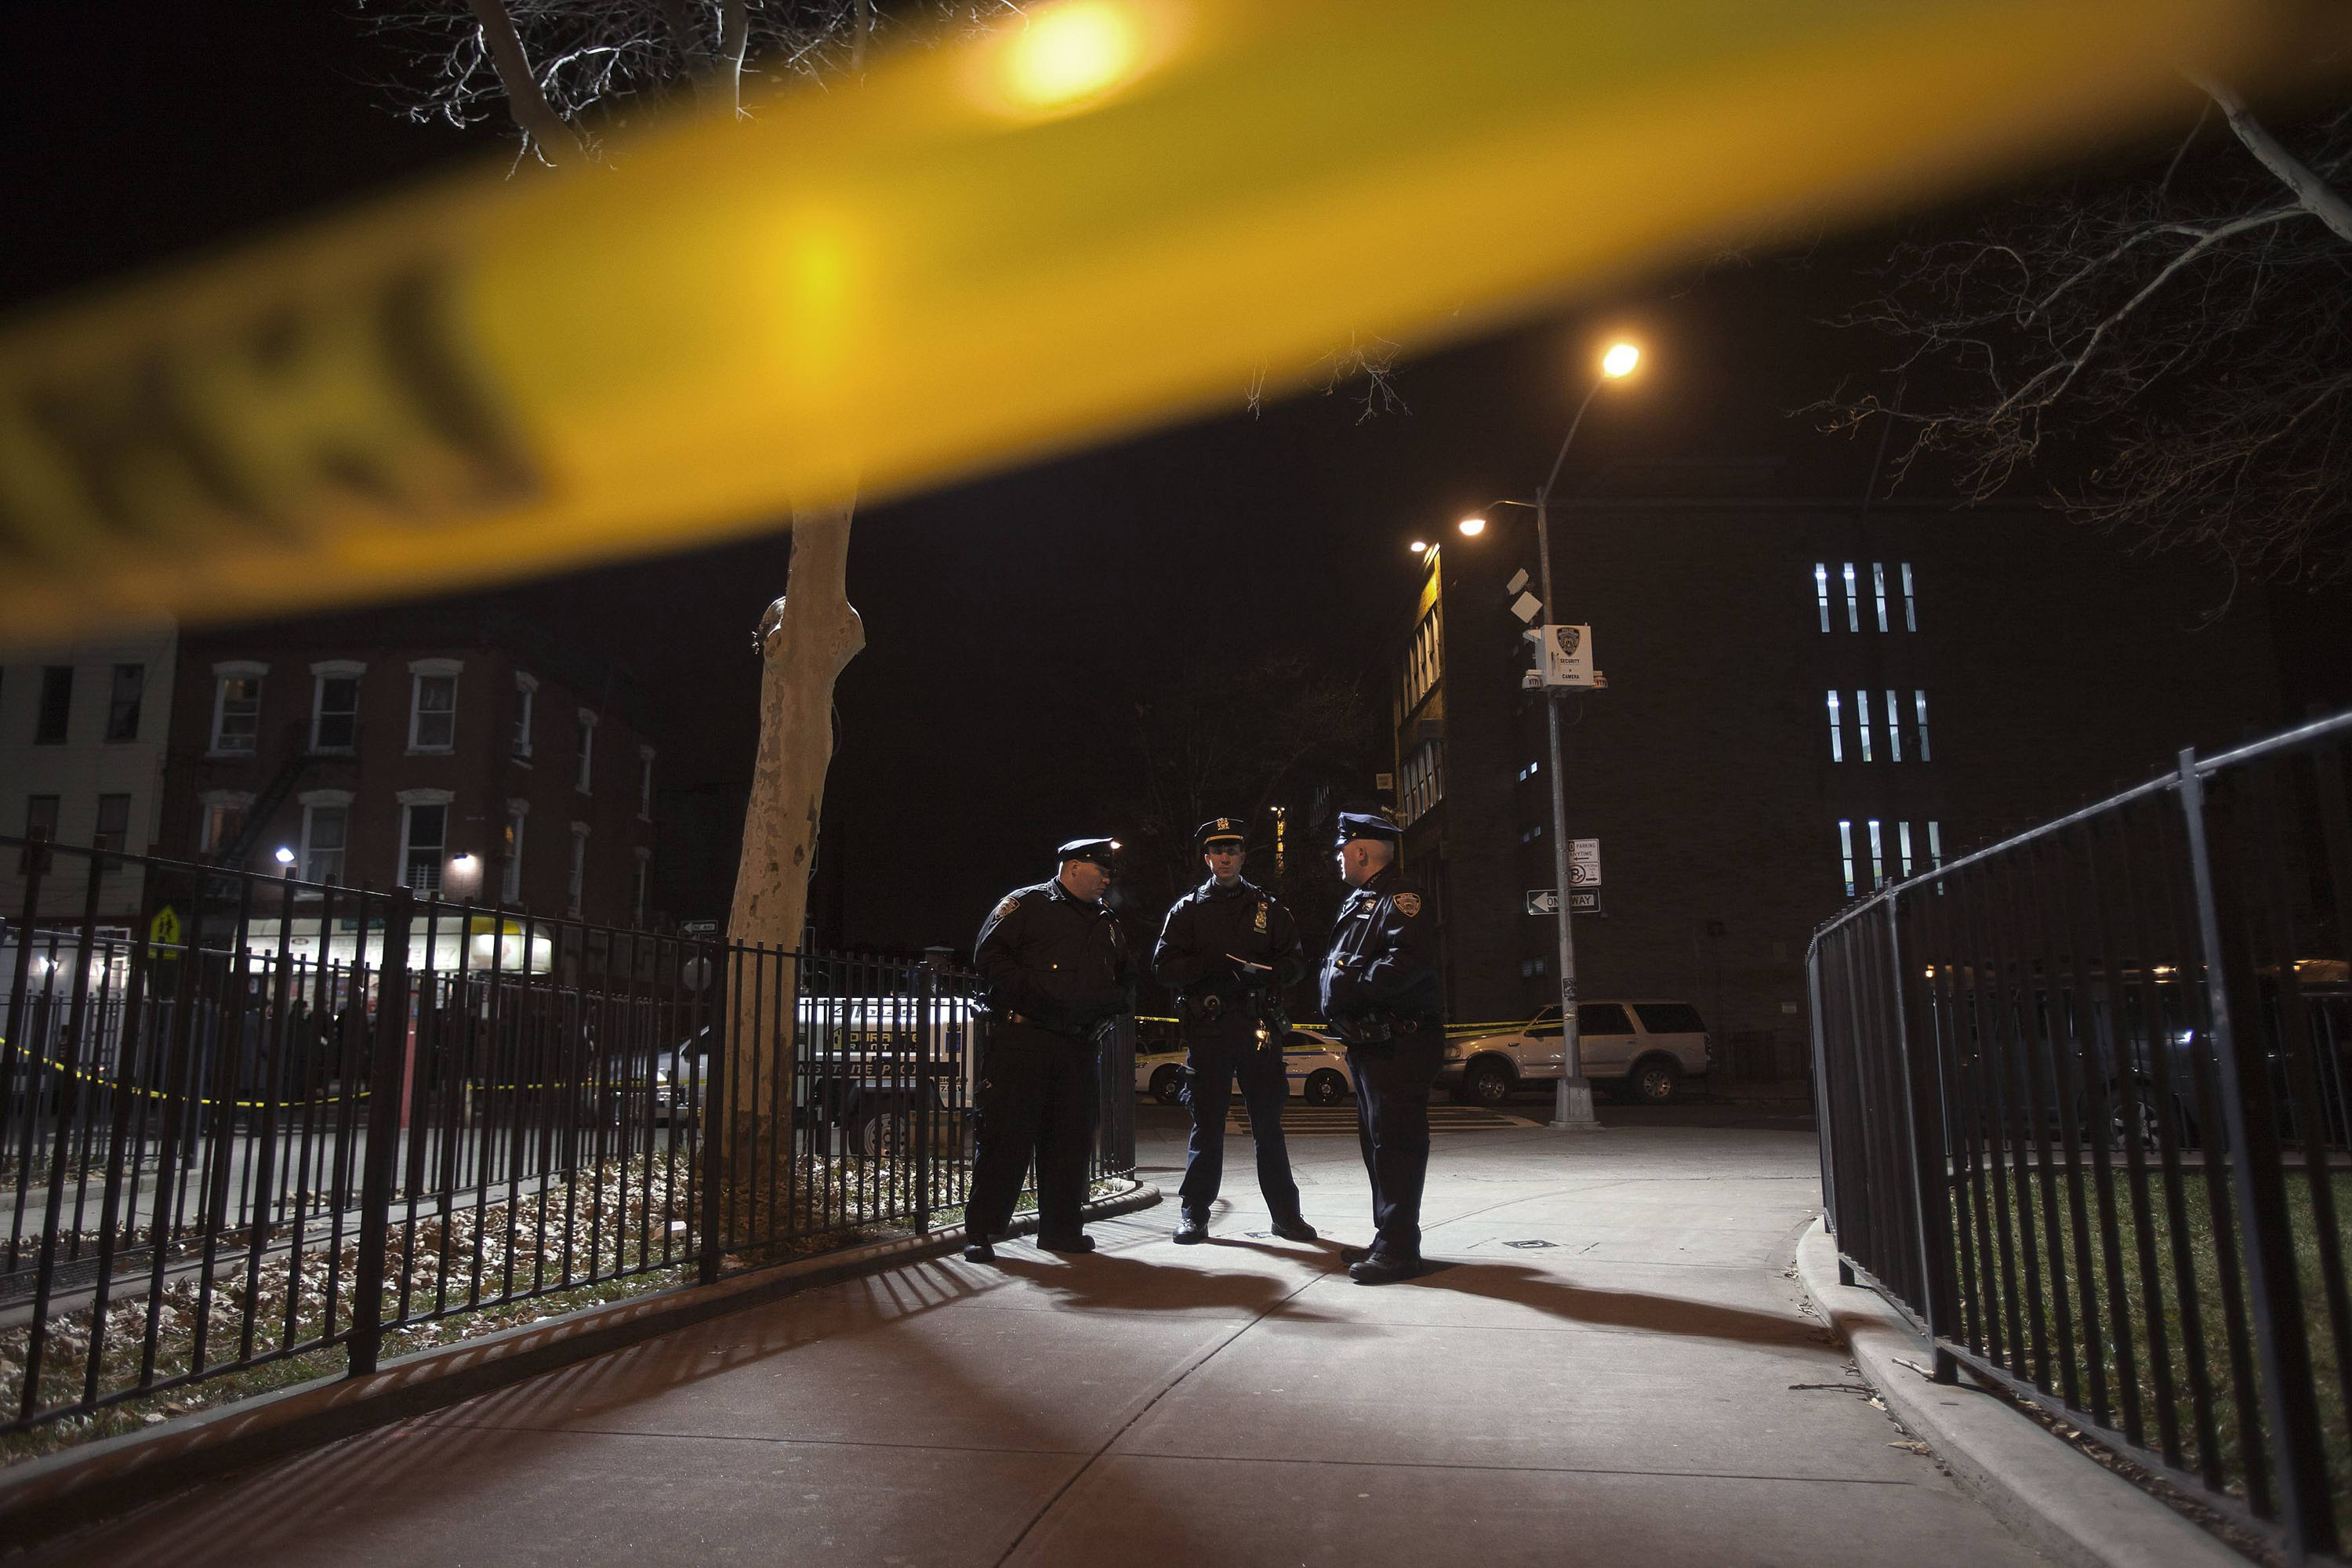 Police are pictured at the scene of a shooting where two New York Police officers were shot dead in the Brooklyn borough of New York City on Dec. 20, 2014.